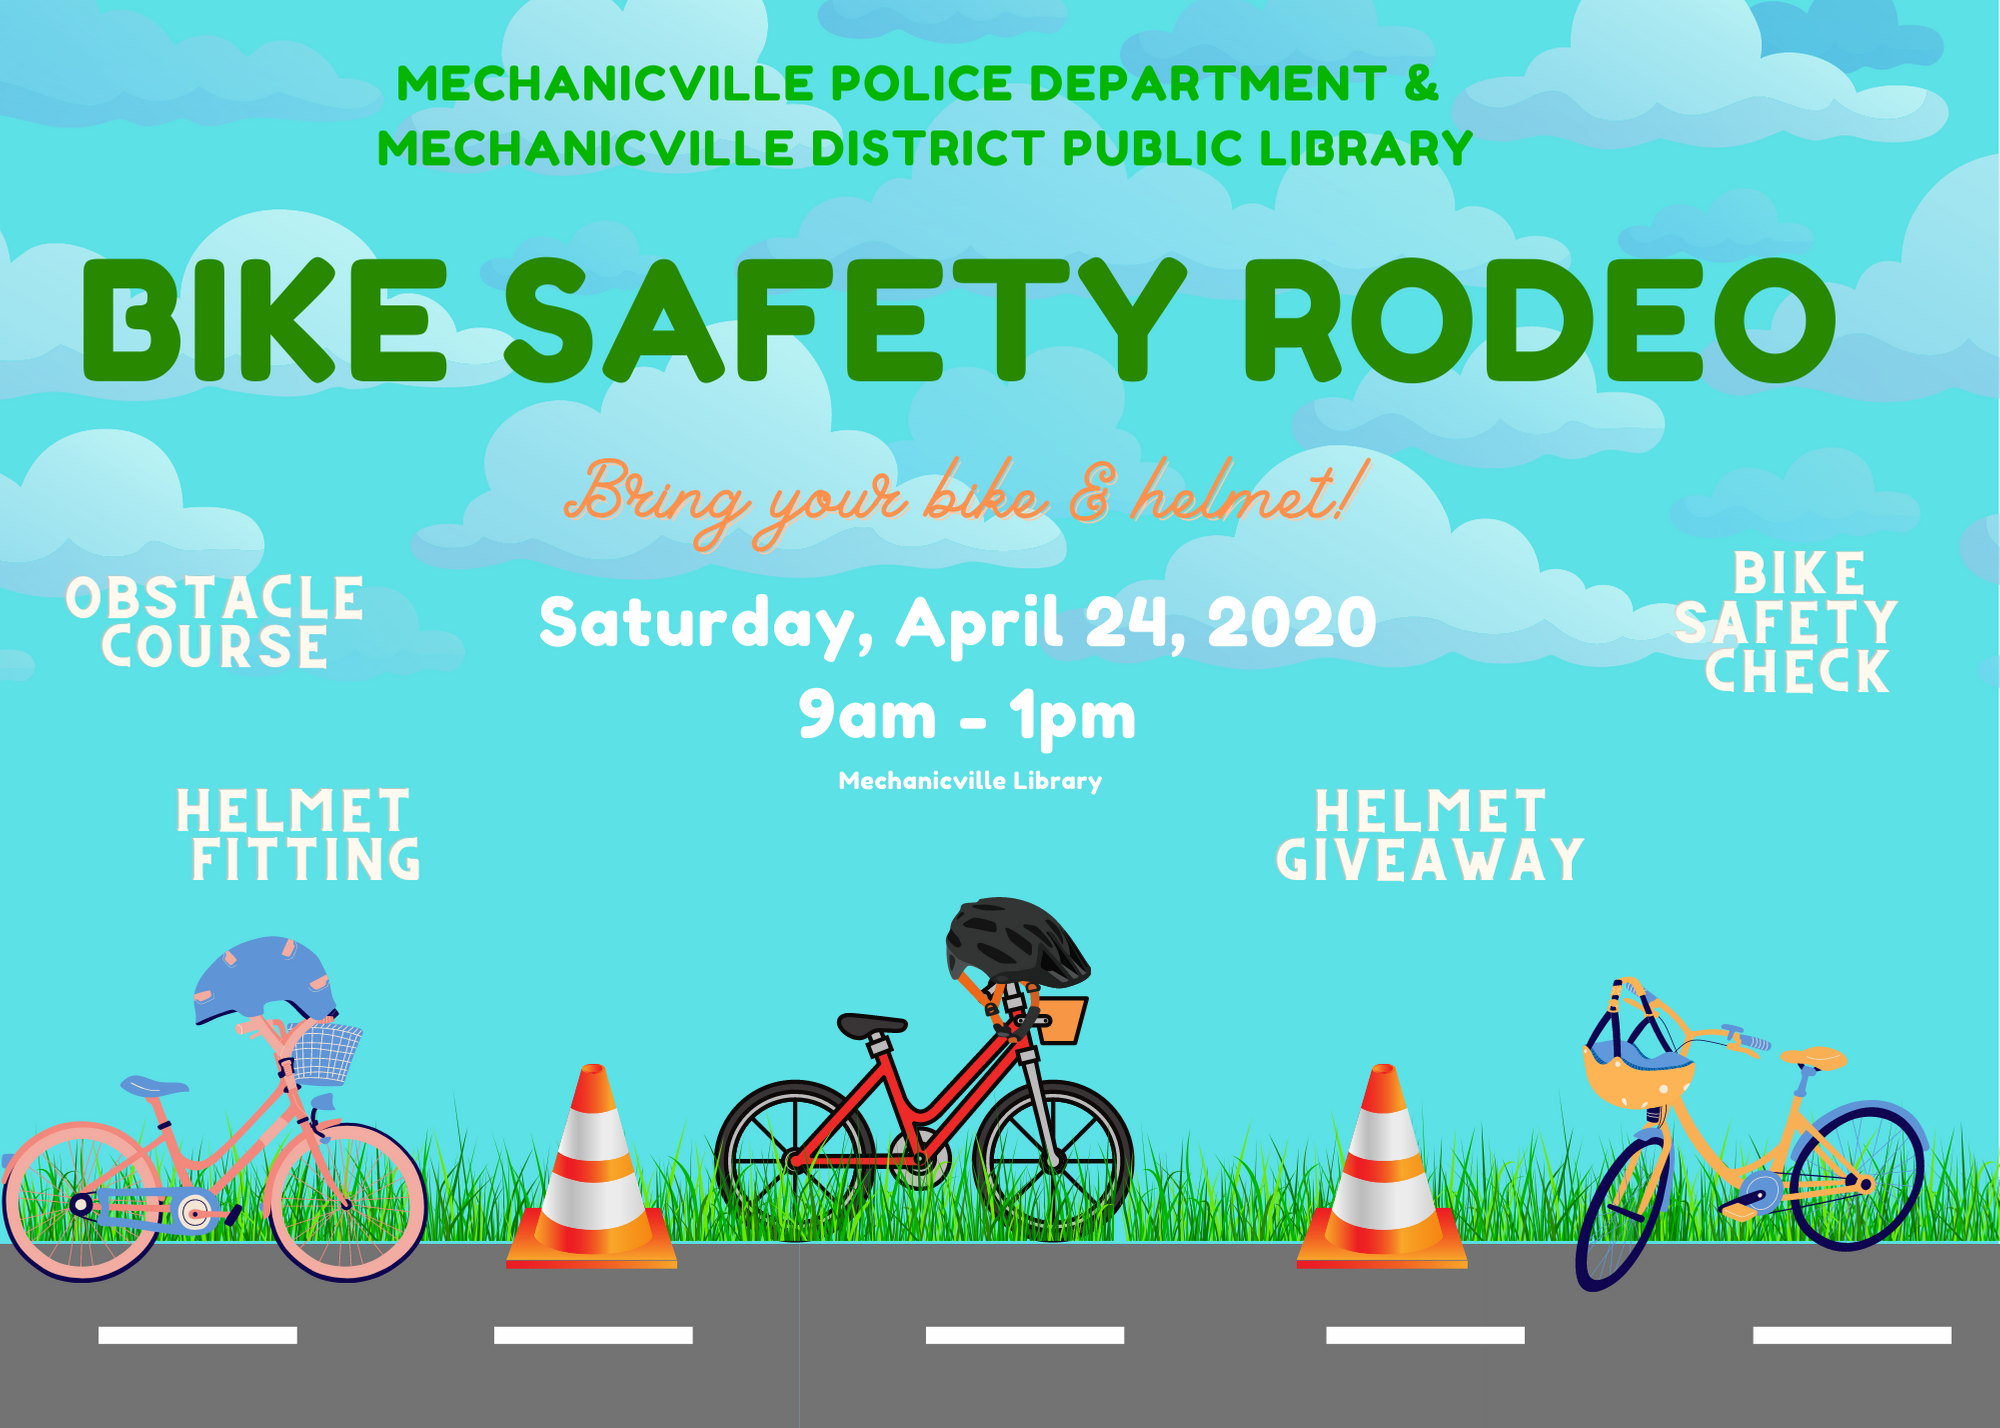 Bike Safety Rodeo @ Mechanicville District Public Library | Mechanicville | New York | United States